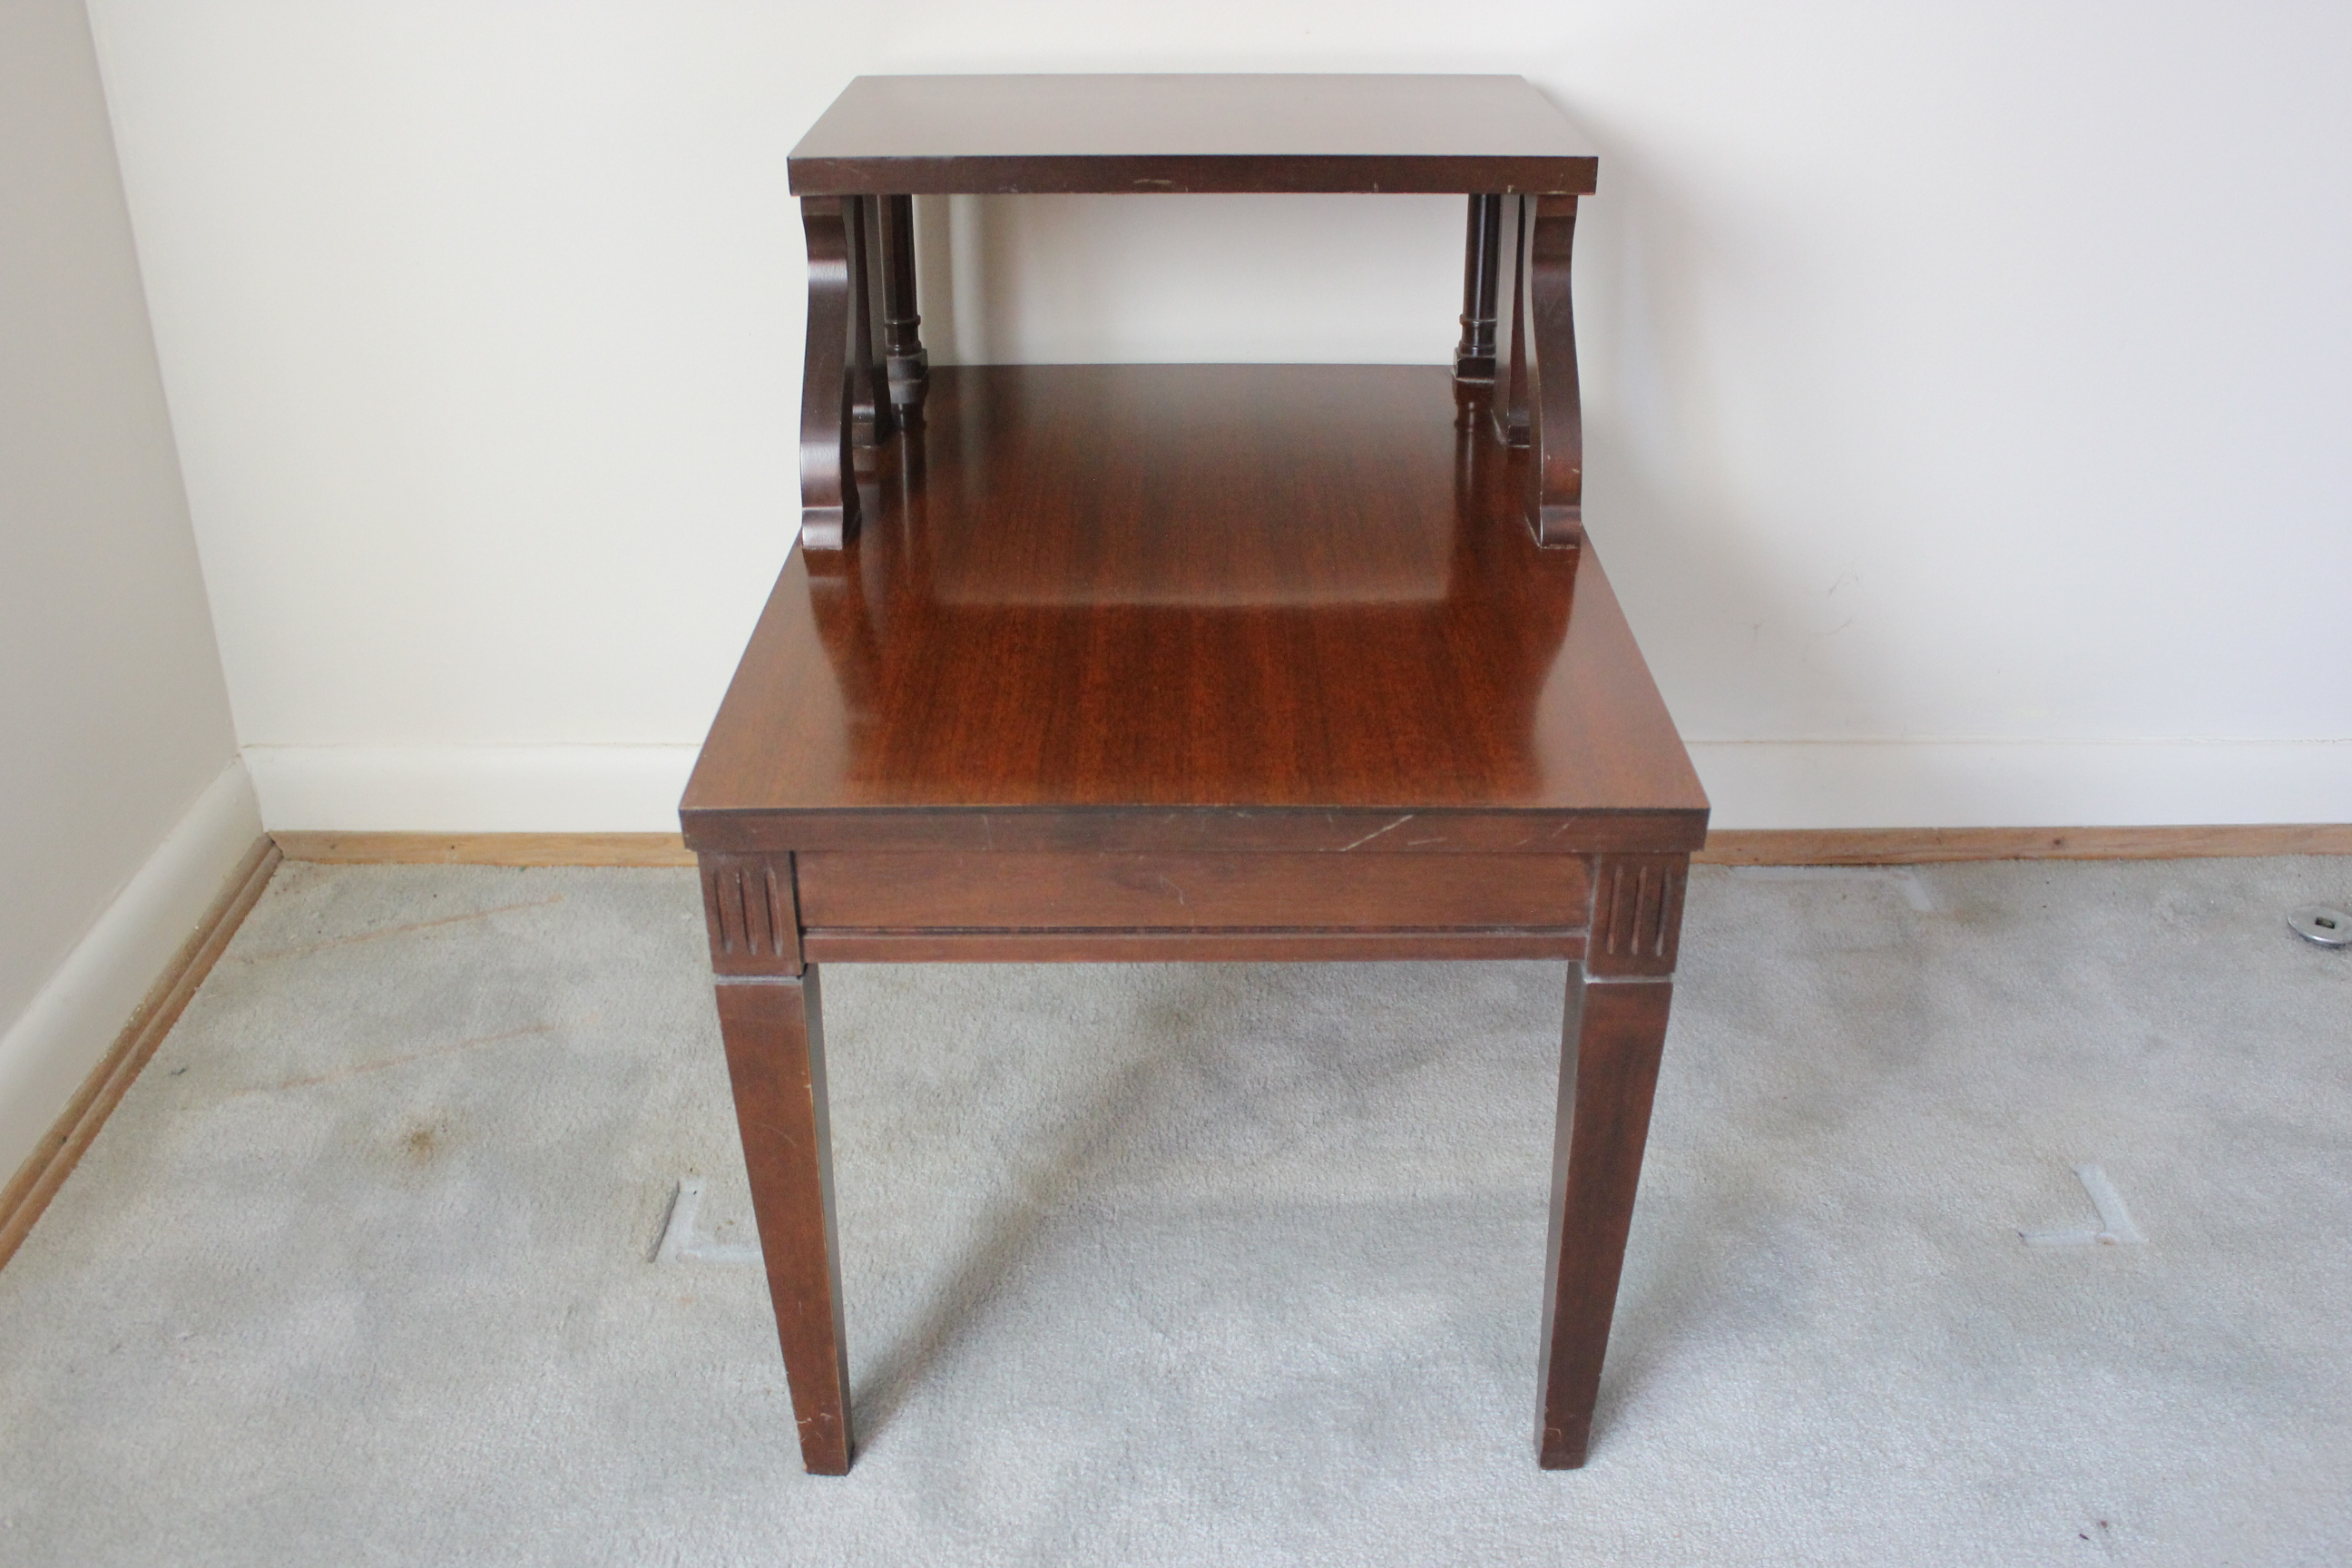 Mersman Mahogany TwoTier Side Step Table EBTH